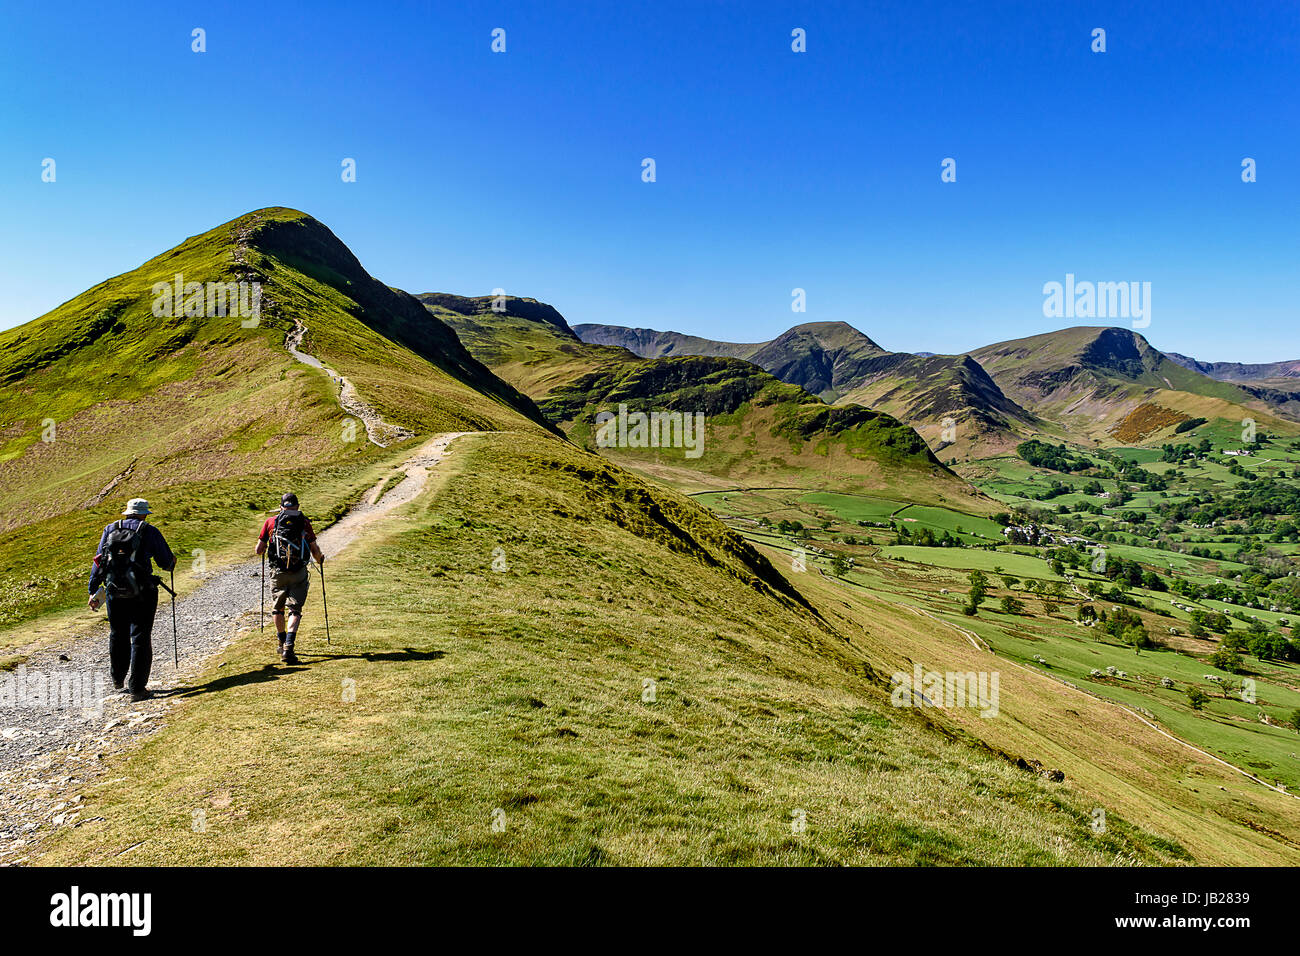 Walkers heading up Catbells near Keswick in the Lake District national park - Stock Image